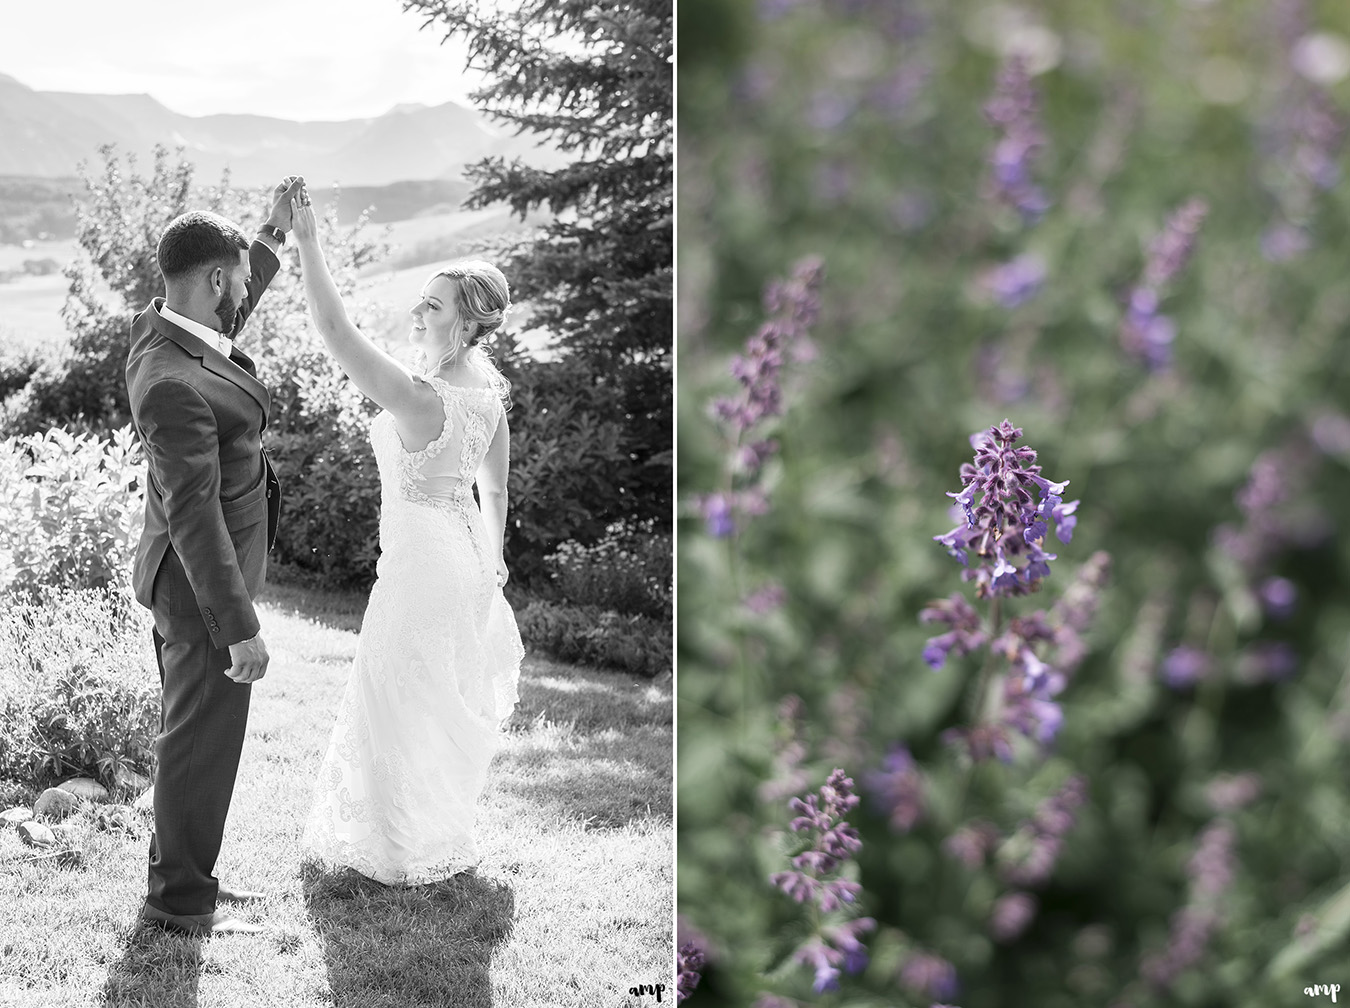 Bride and Groom dance in the Crested Butte Mountain Wedding Garden among the wildflowers